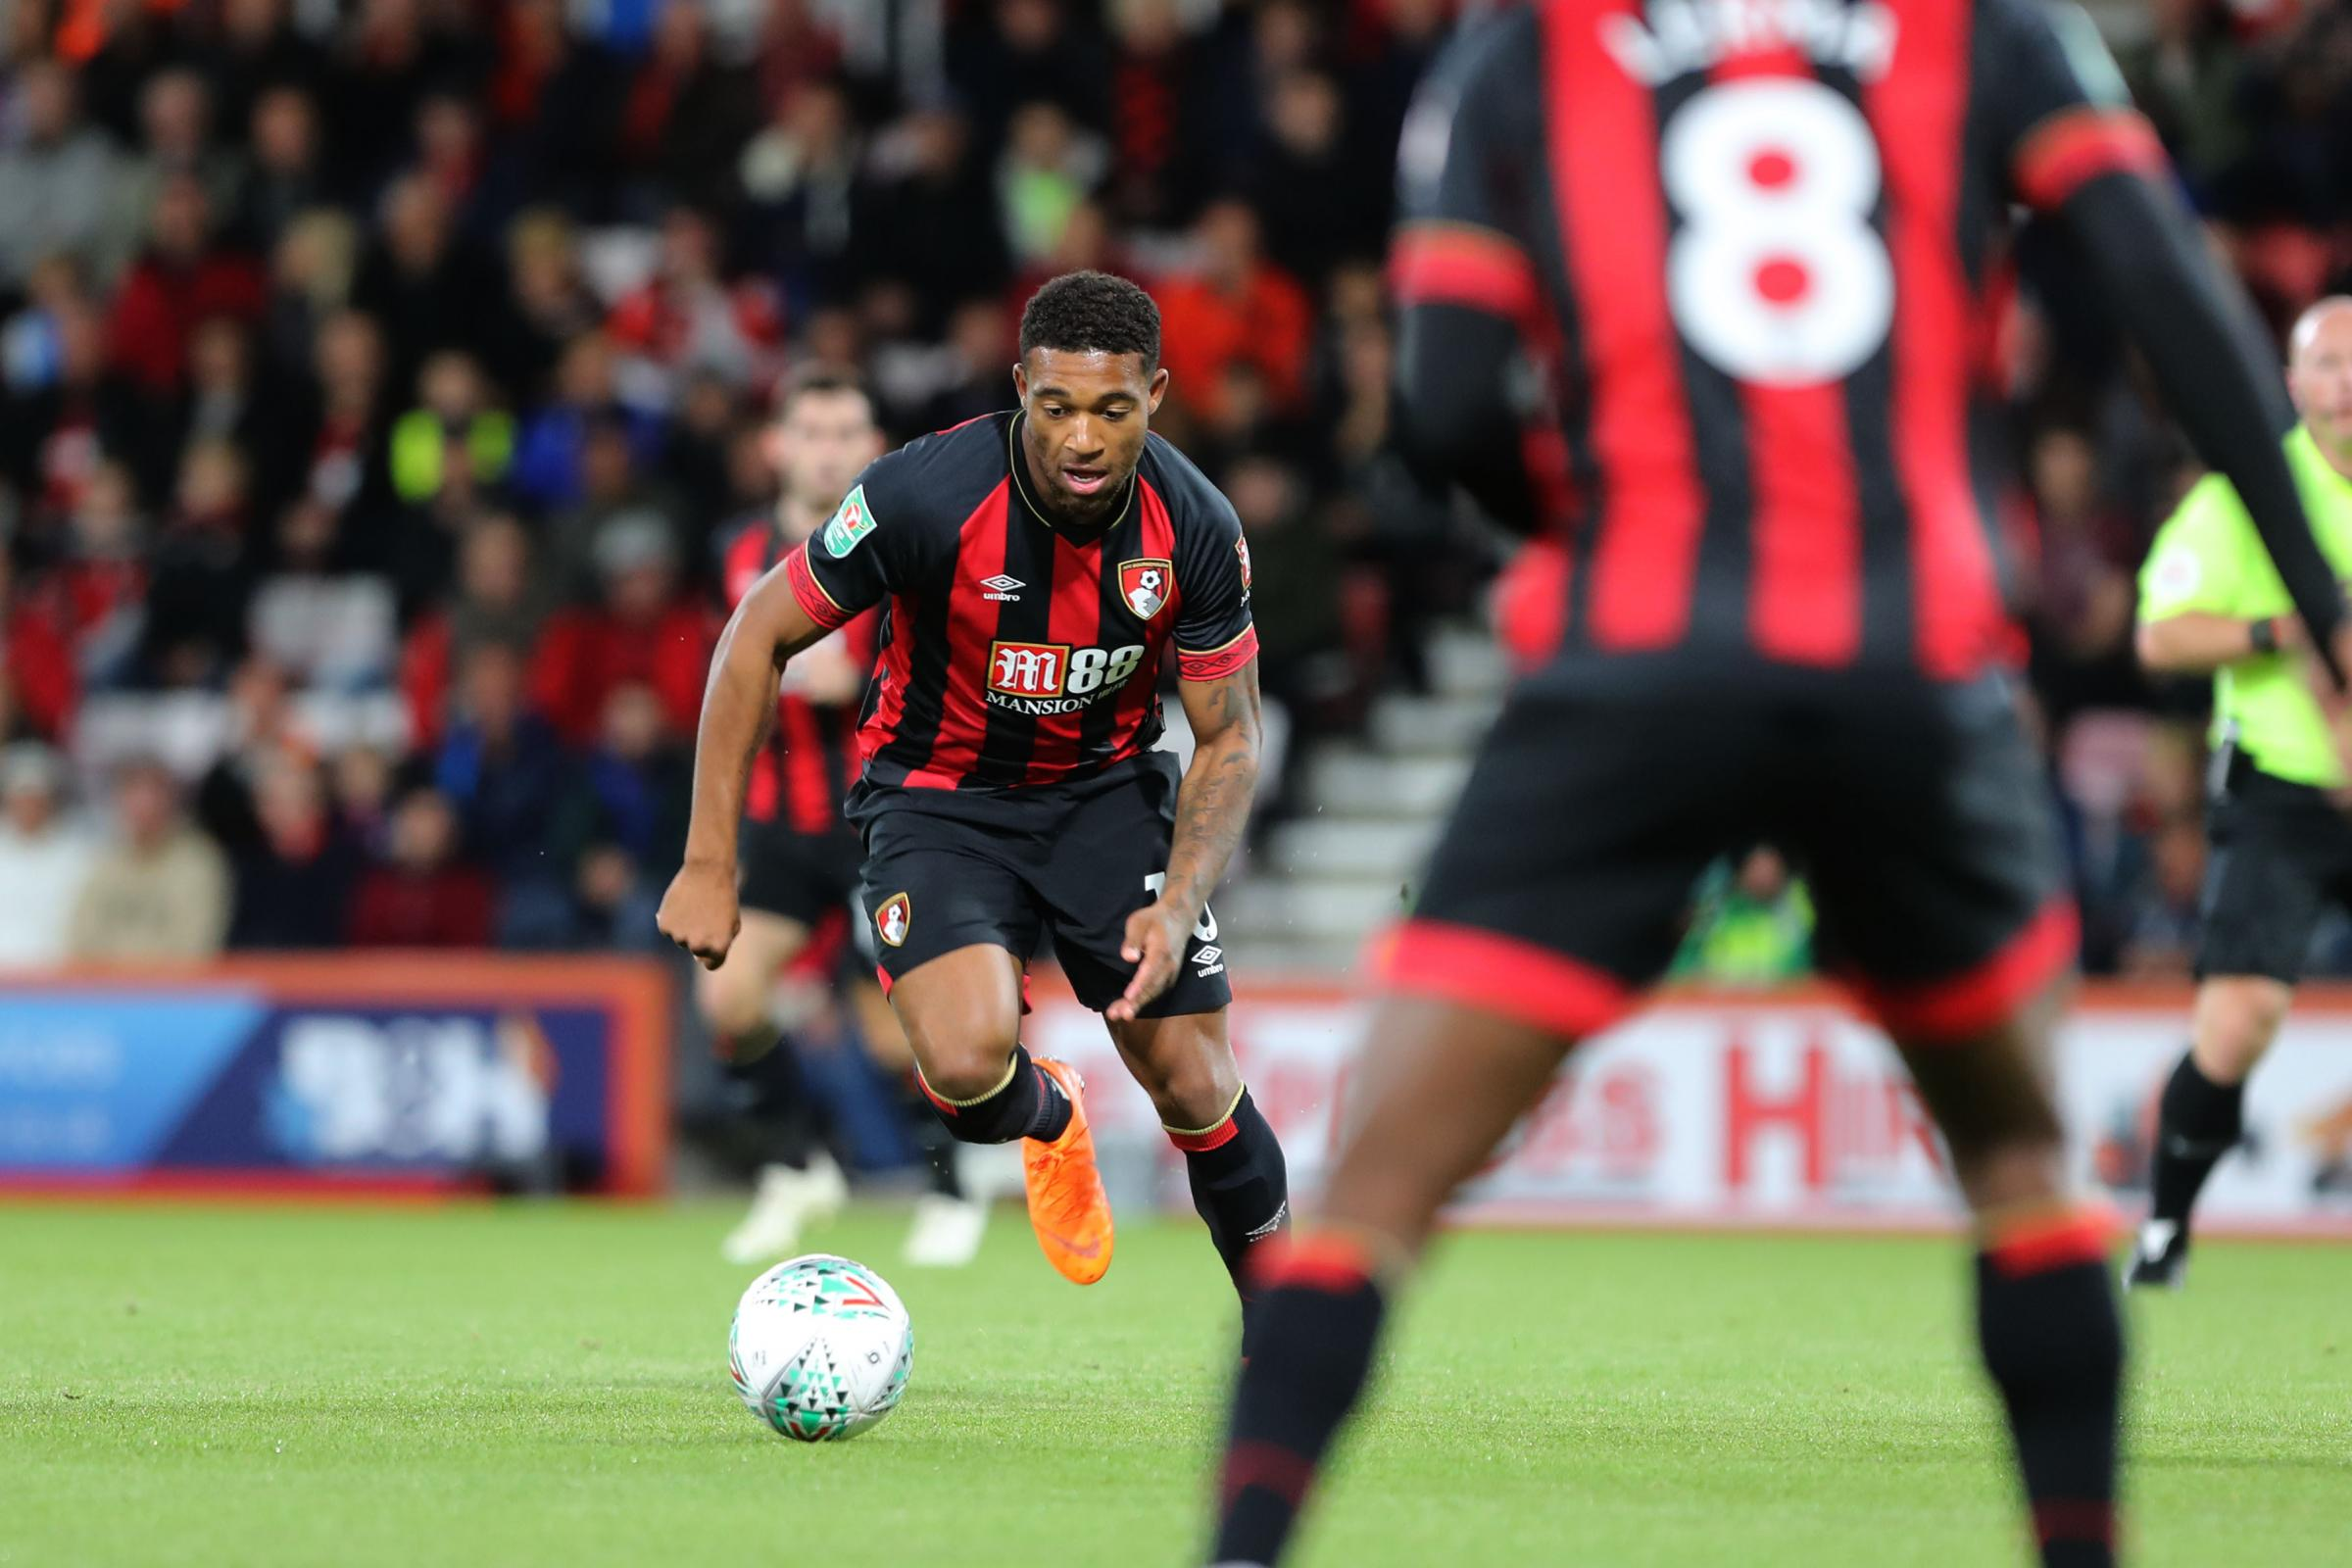 I need to work much harder, says Cherries winger Ibe